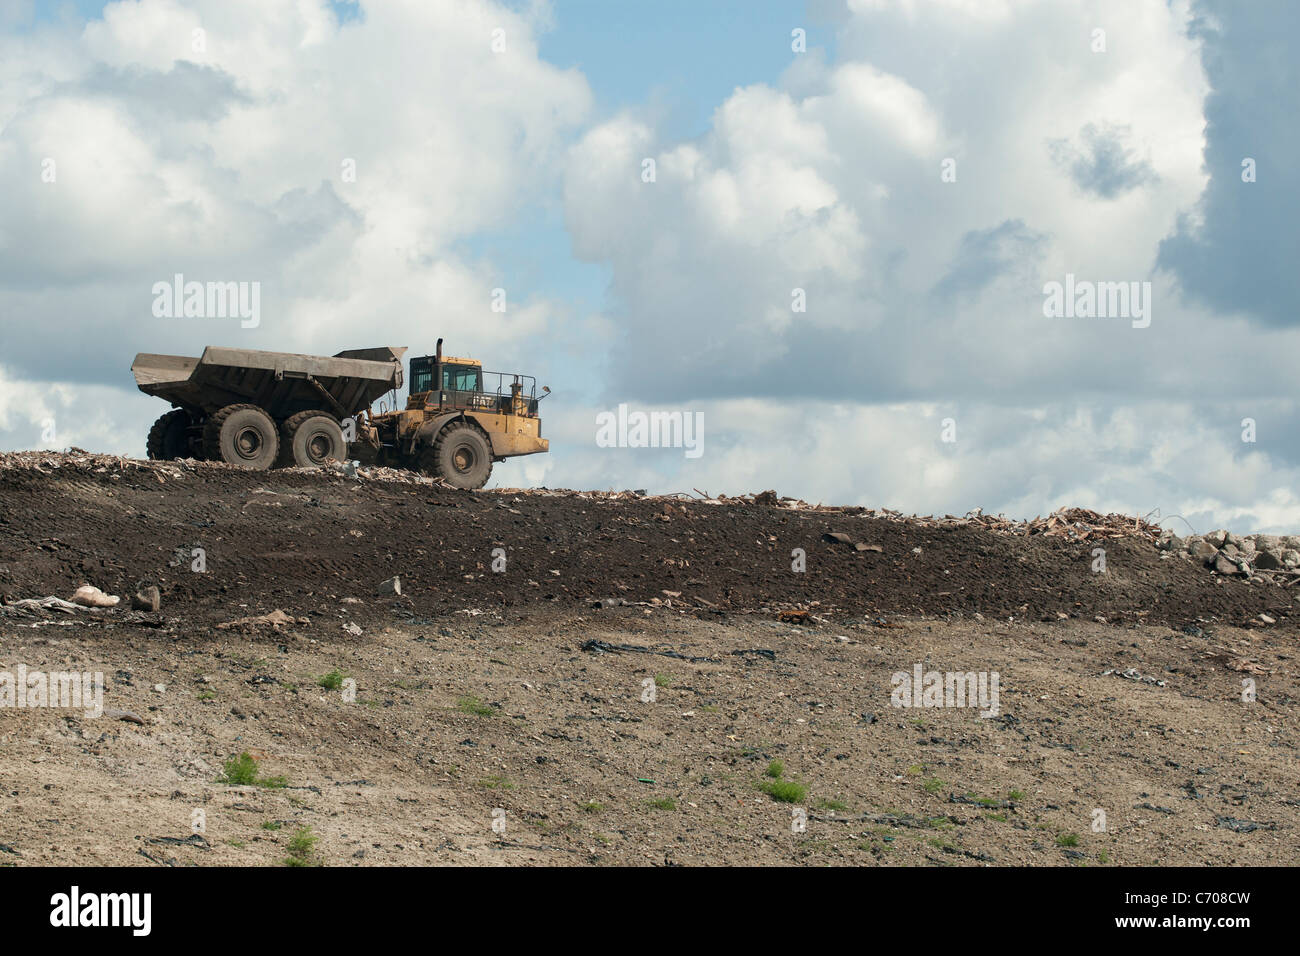 truck on landfill - Stock Image